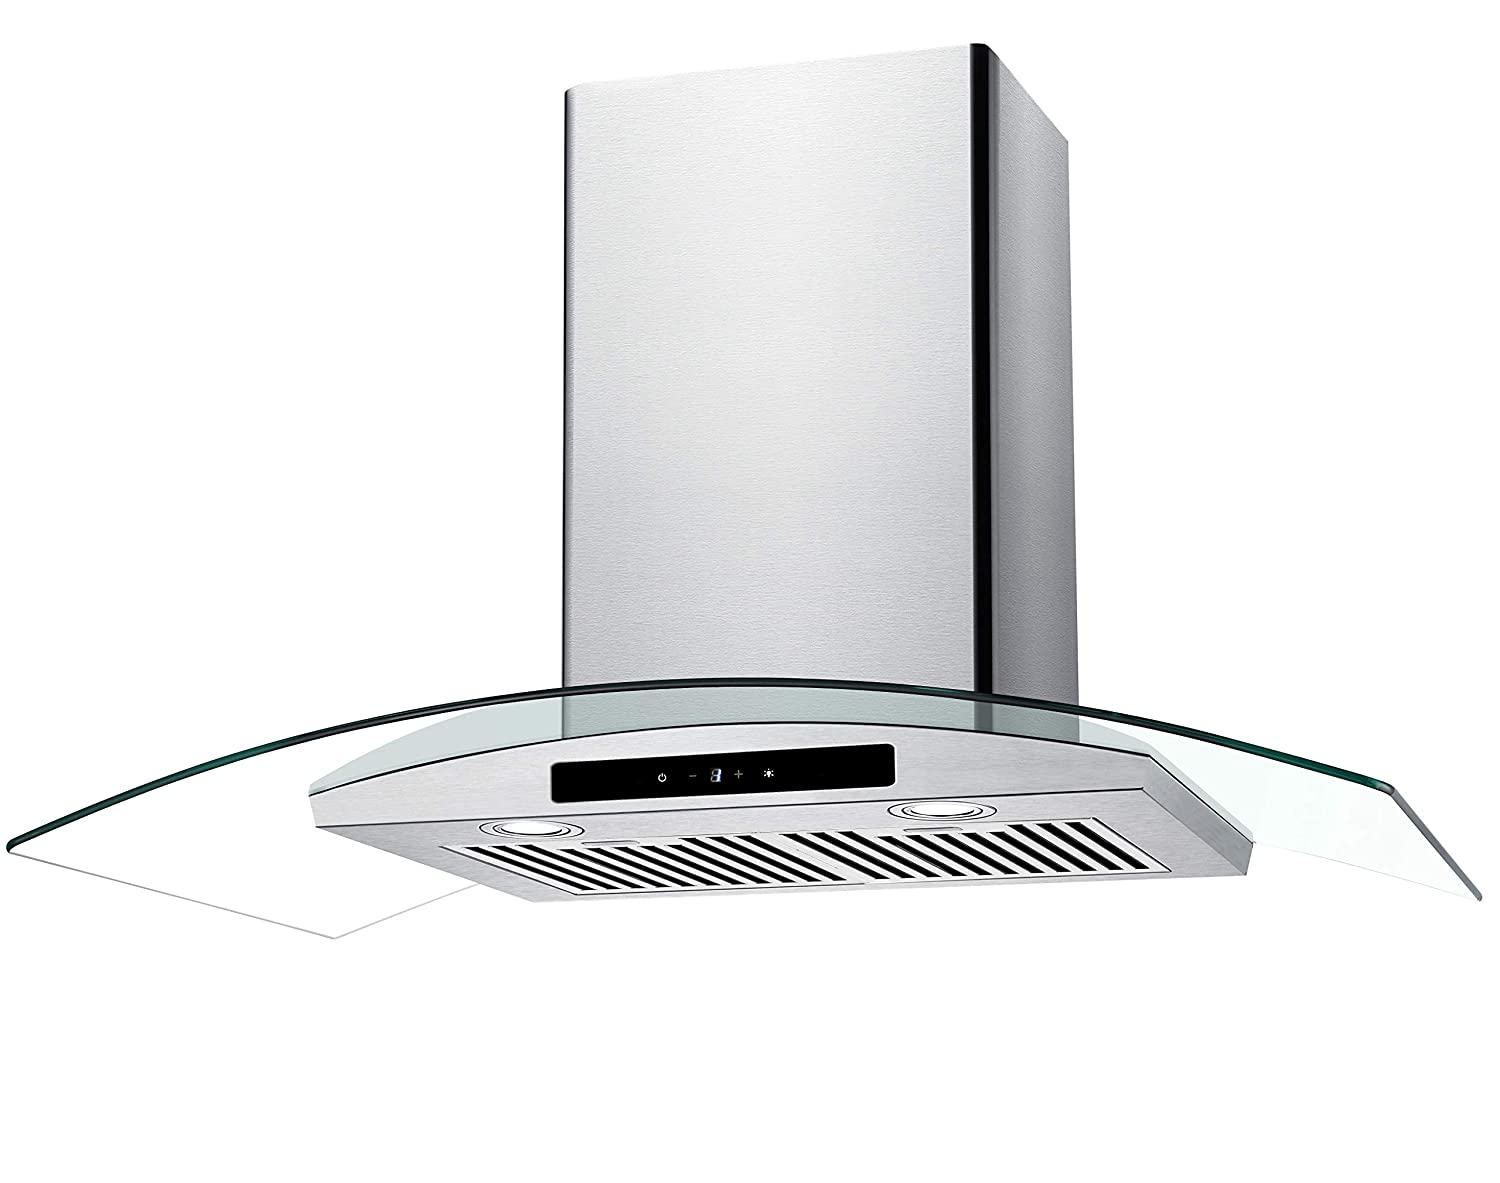 """CIARRA 36"""" Convertible Range Hood 450-CFM Ducted/Ductless with LED Lighting,Touch Control Panel,3 Venting Speeds,Reusable Filters,Stainless Steel & Tempered Glass Kitchen Cooking Fan Extractor Hoods"""